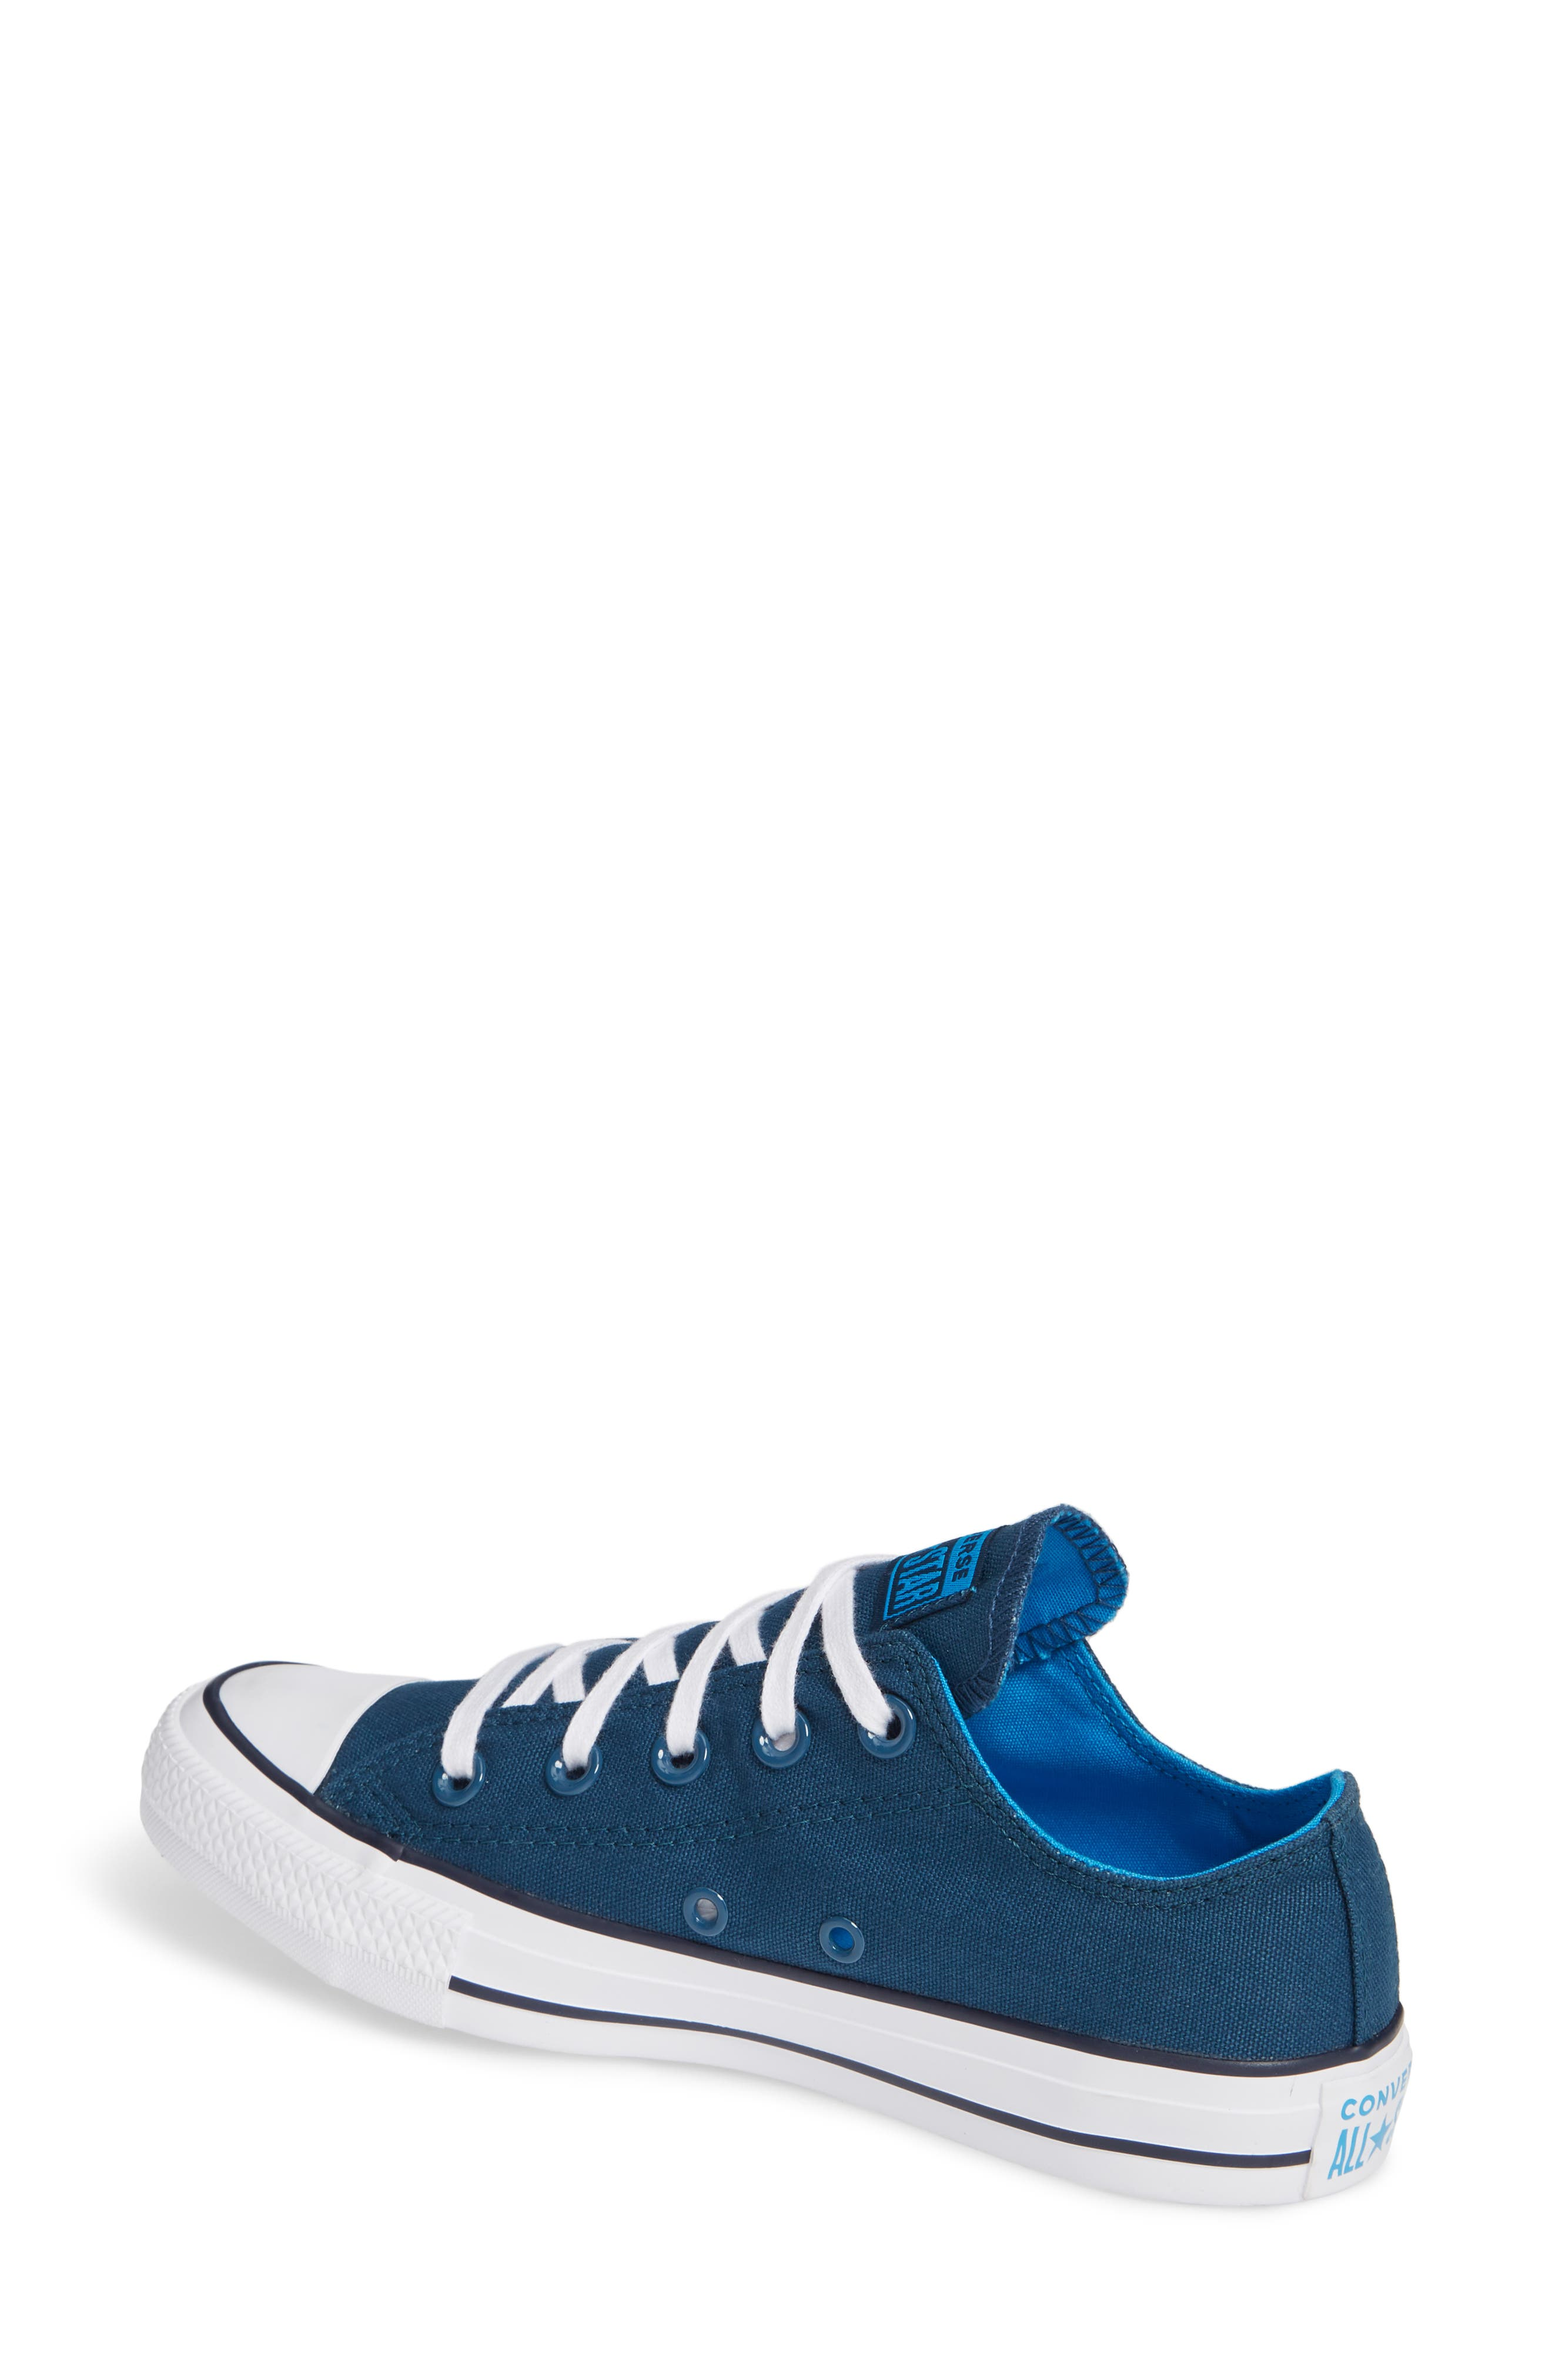 Chuck Taylor<sup>®</sup> All Star<sup>®</sup> Seasonal Ox Low Top Sneaker,                             Alternate thumbnail 2, color,                             BLUE FIR